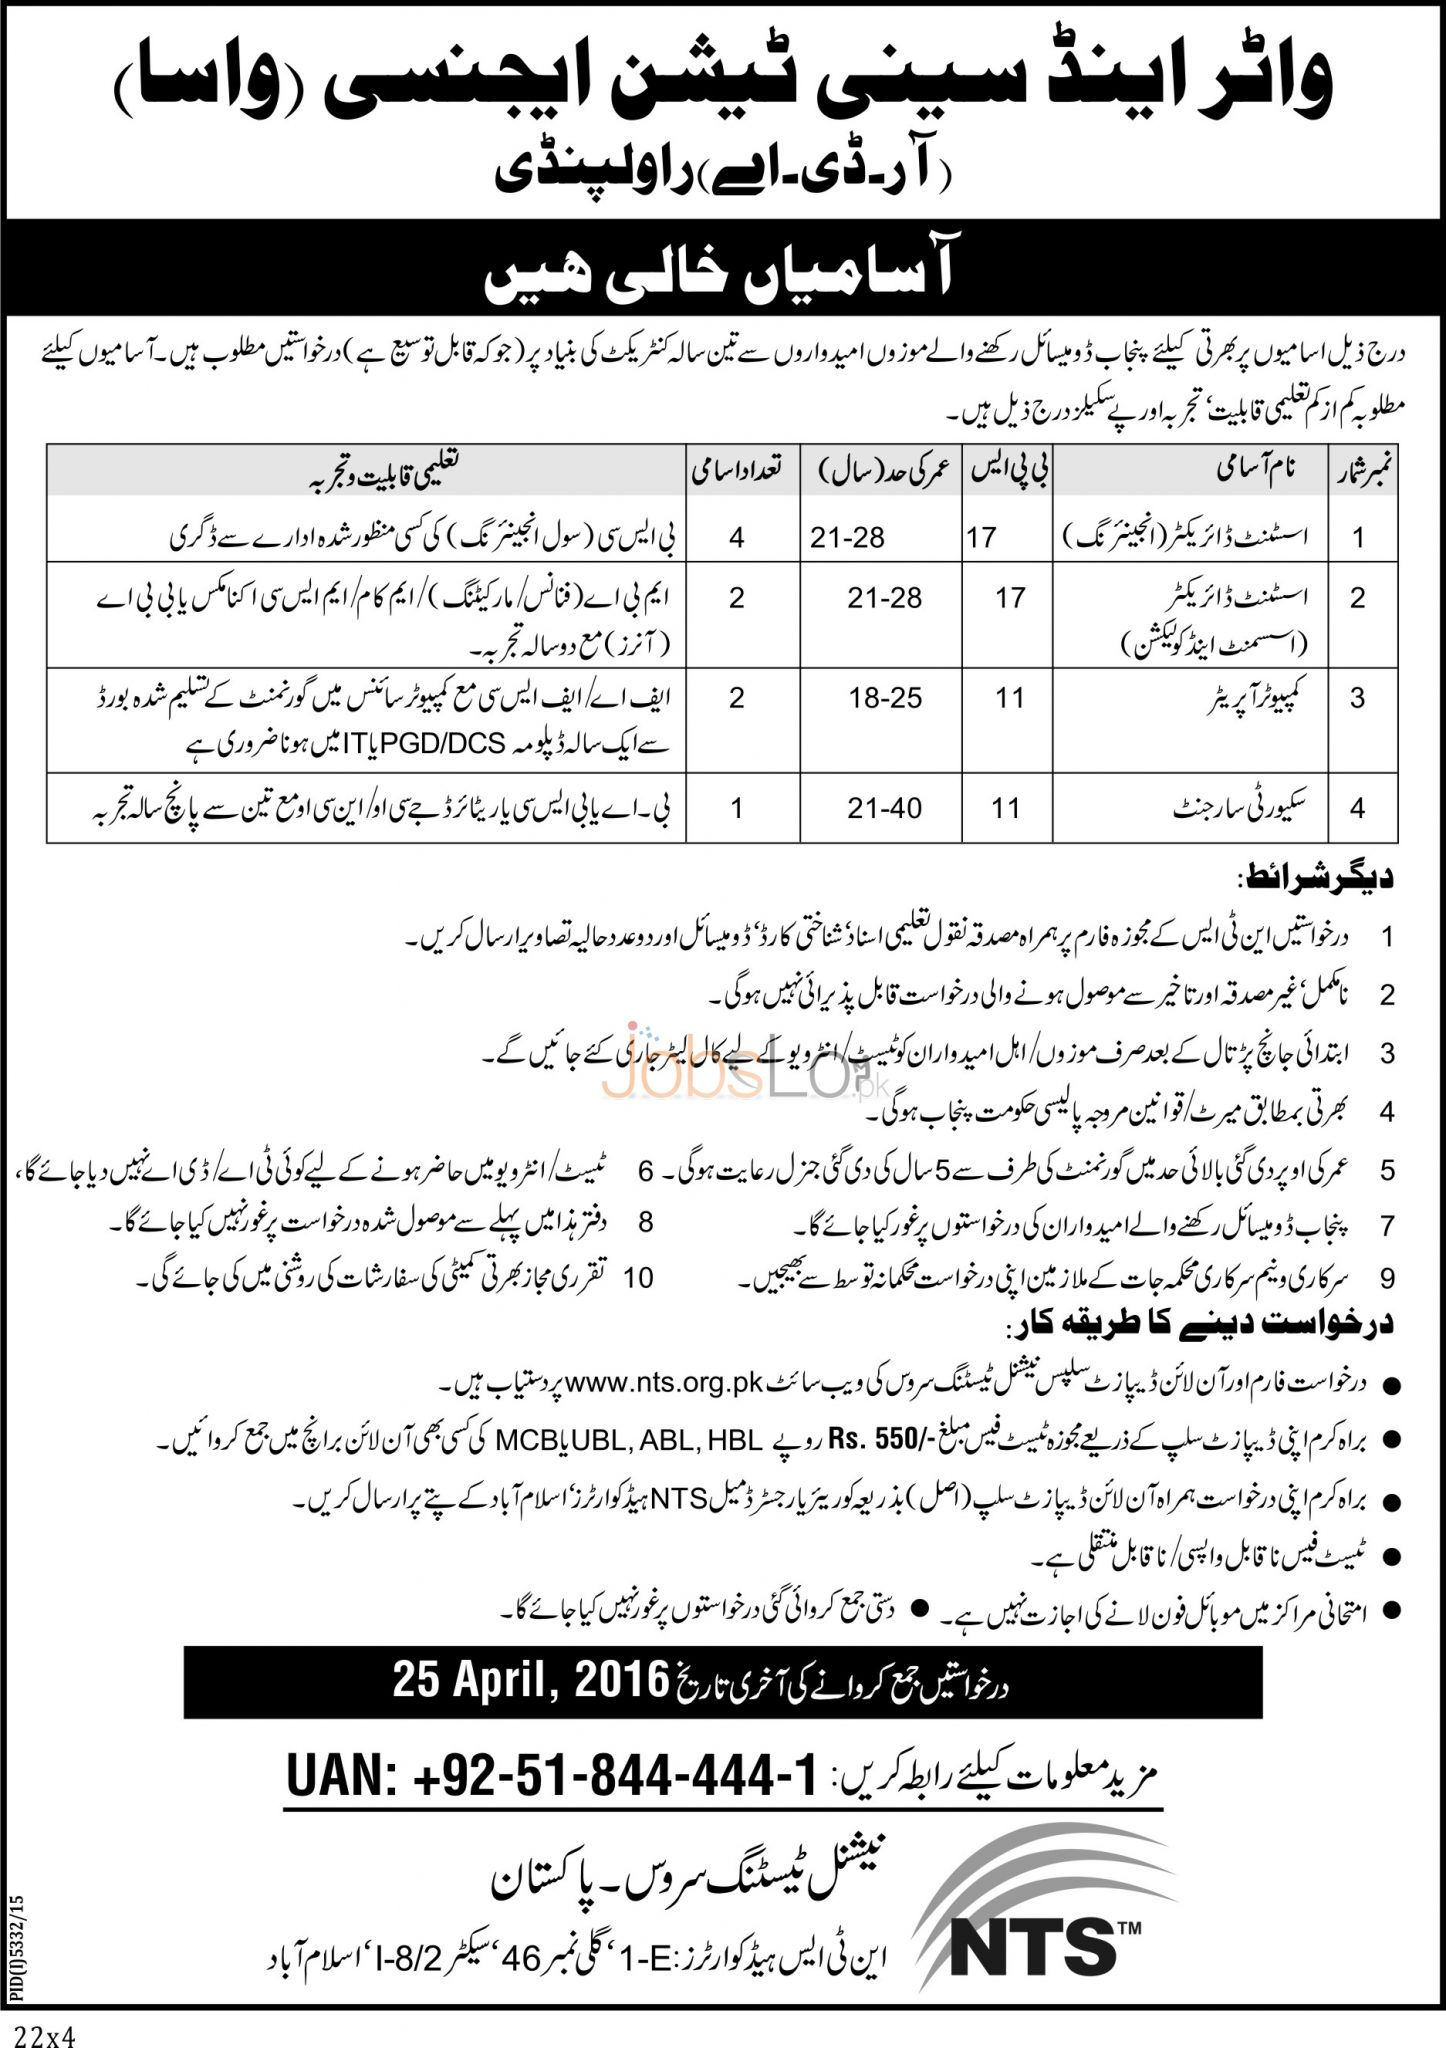 WASA Rawalpindi Development Authority Jobs 2016 NTS Application Form Download Online